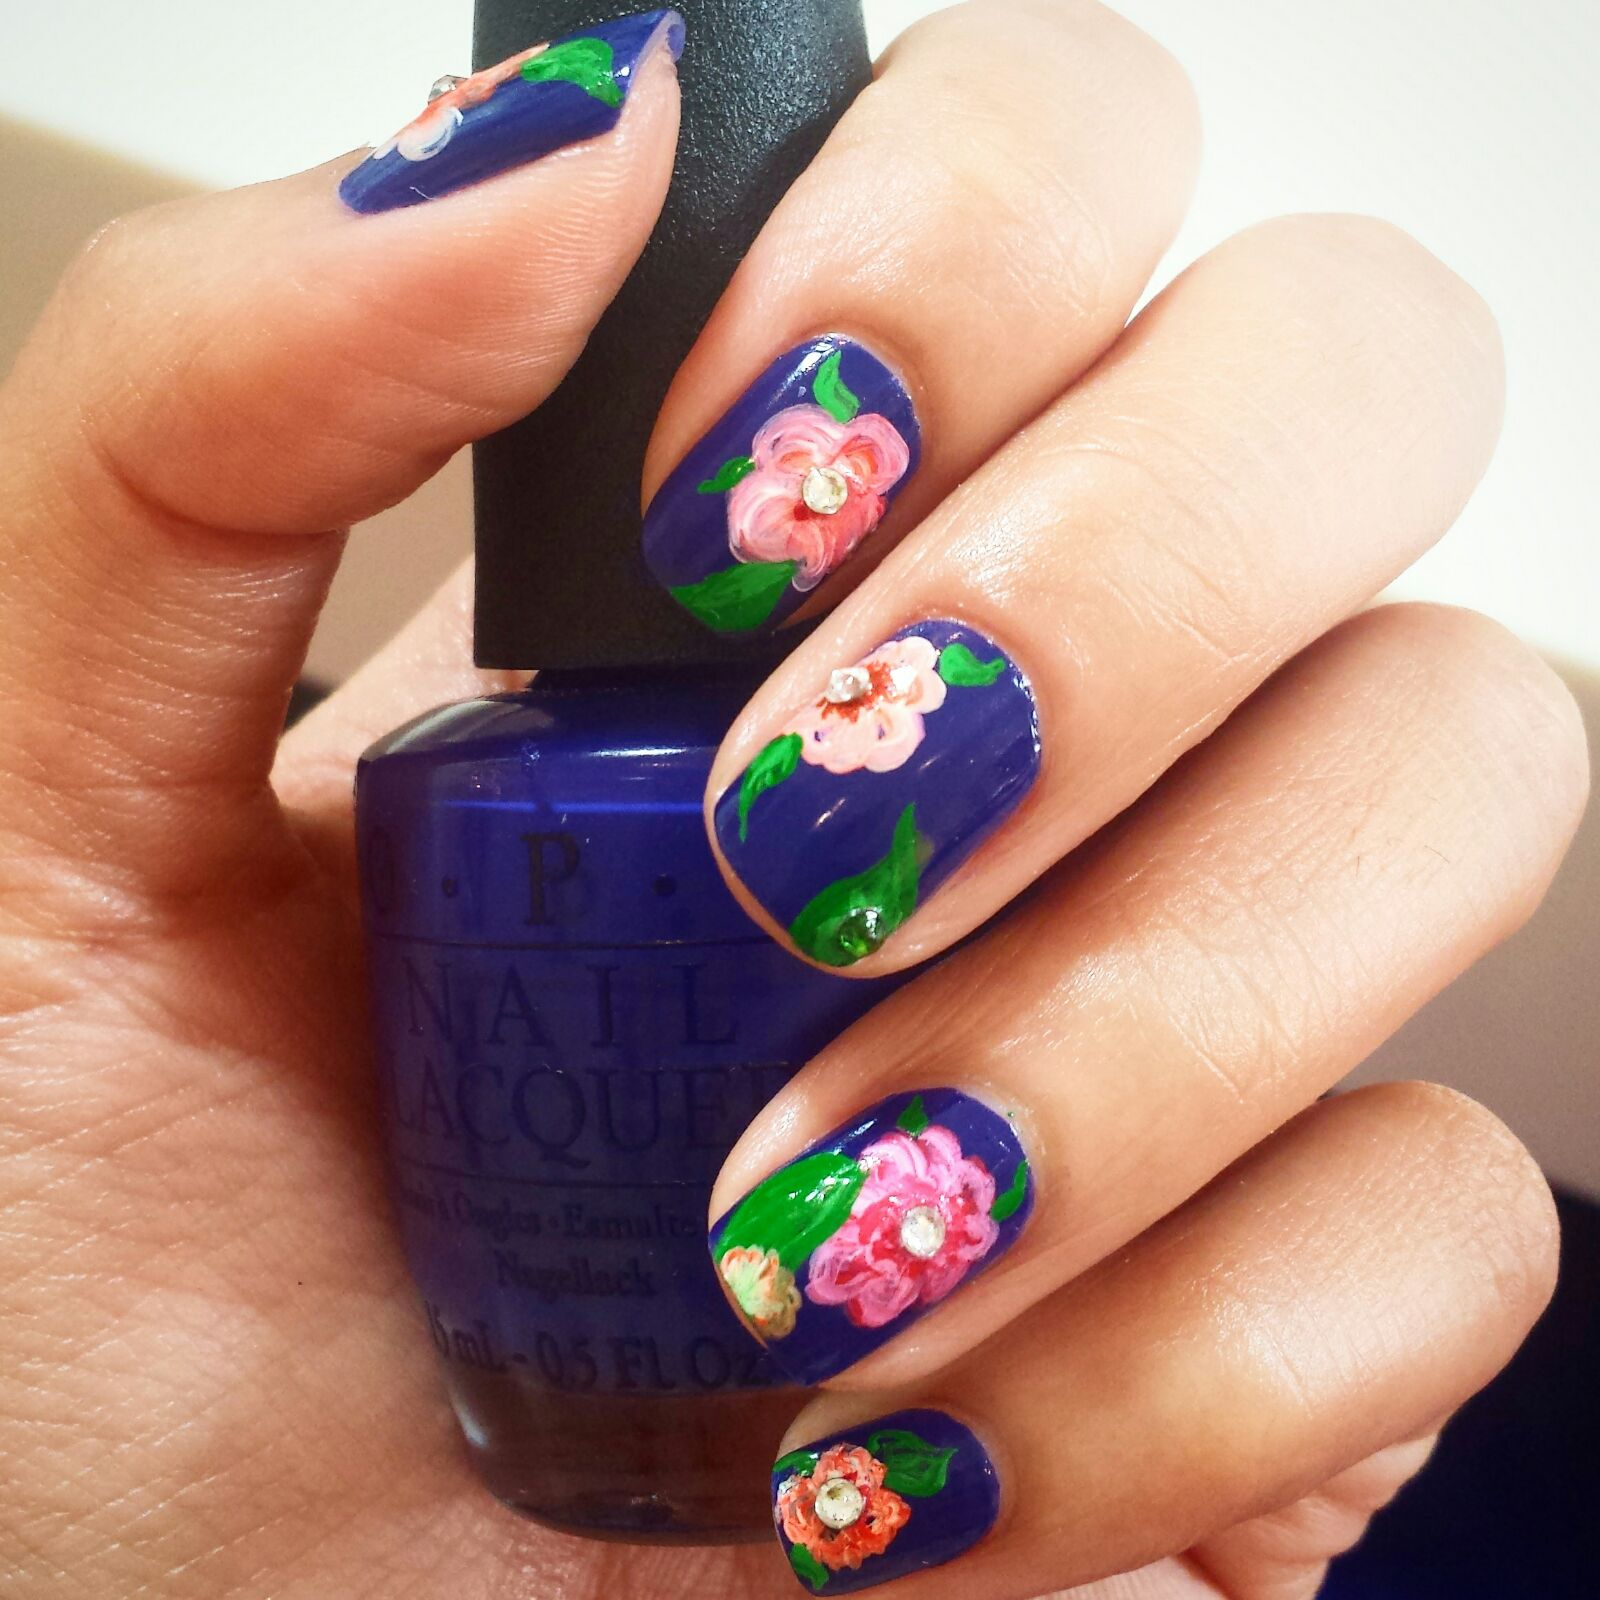 Best Nail Art Designs Gallery: The Best Salons In Dubai For Nail Art